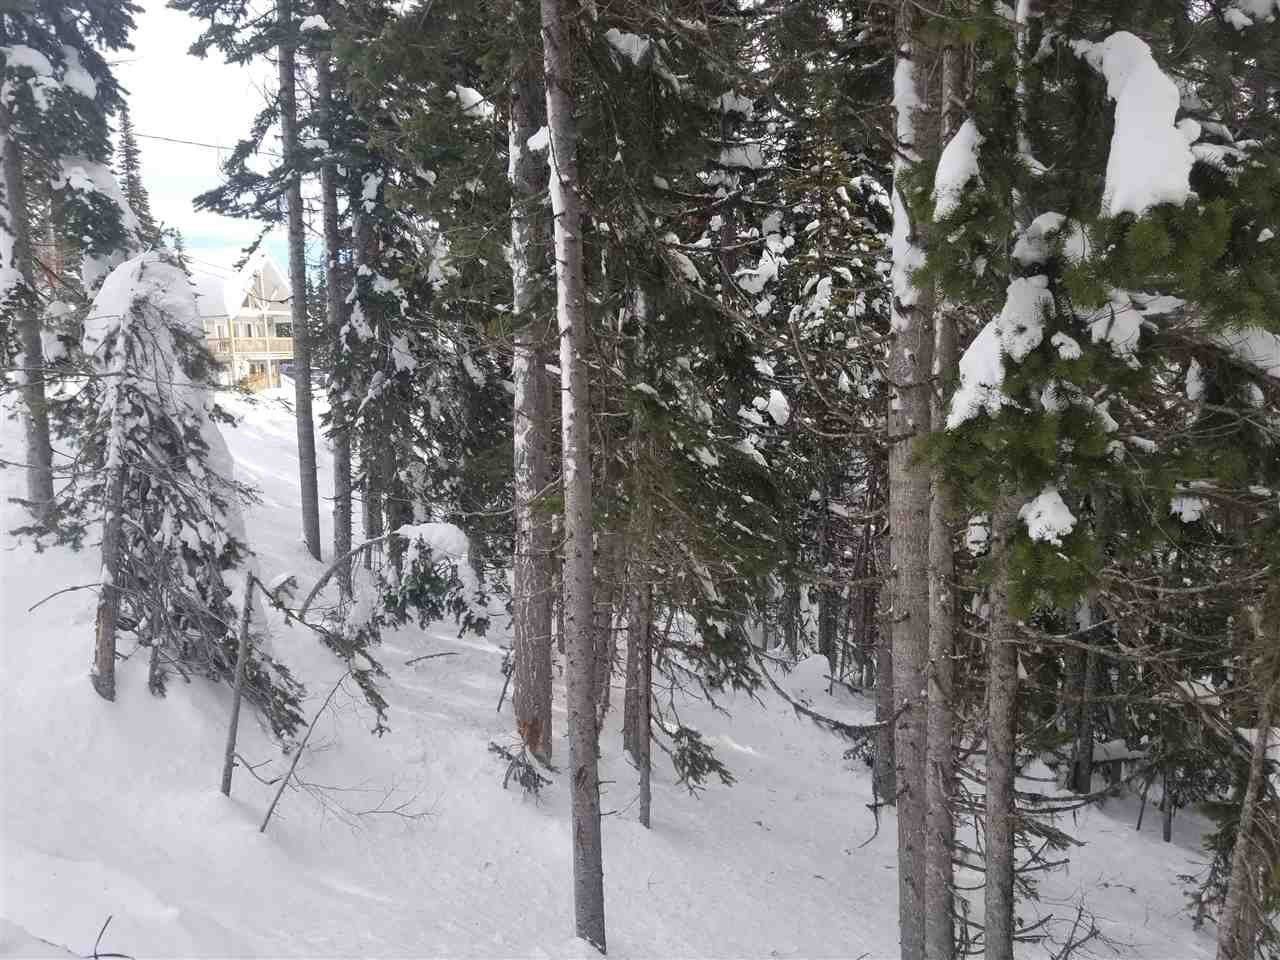 """Main Photo: 192 ALPINE Way in Smithers: Smithers - Rural Land for sale in """"Hudson Bay Mountain Estates"""" (Smithers And Area (Zone 54))  : MLS®# R2453889"""